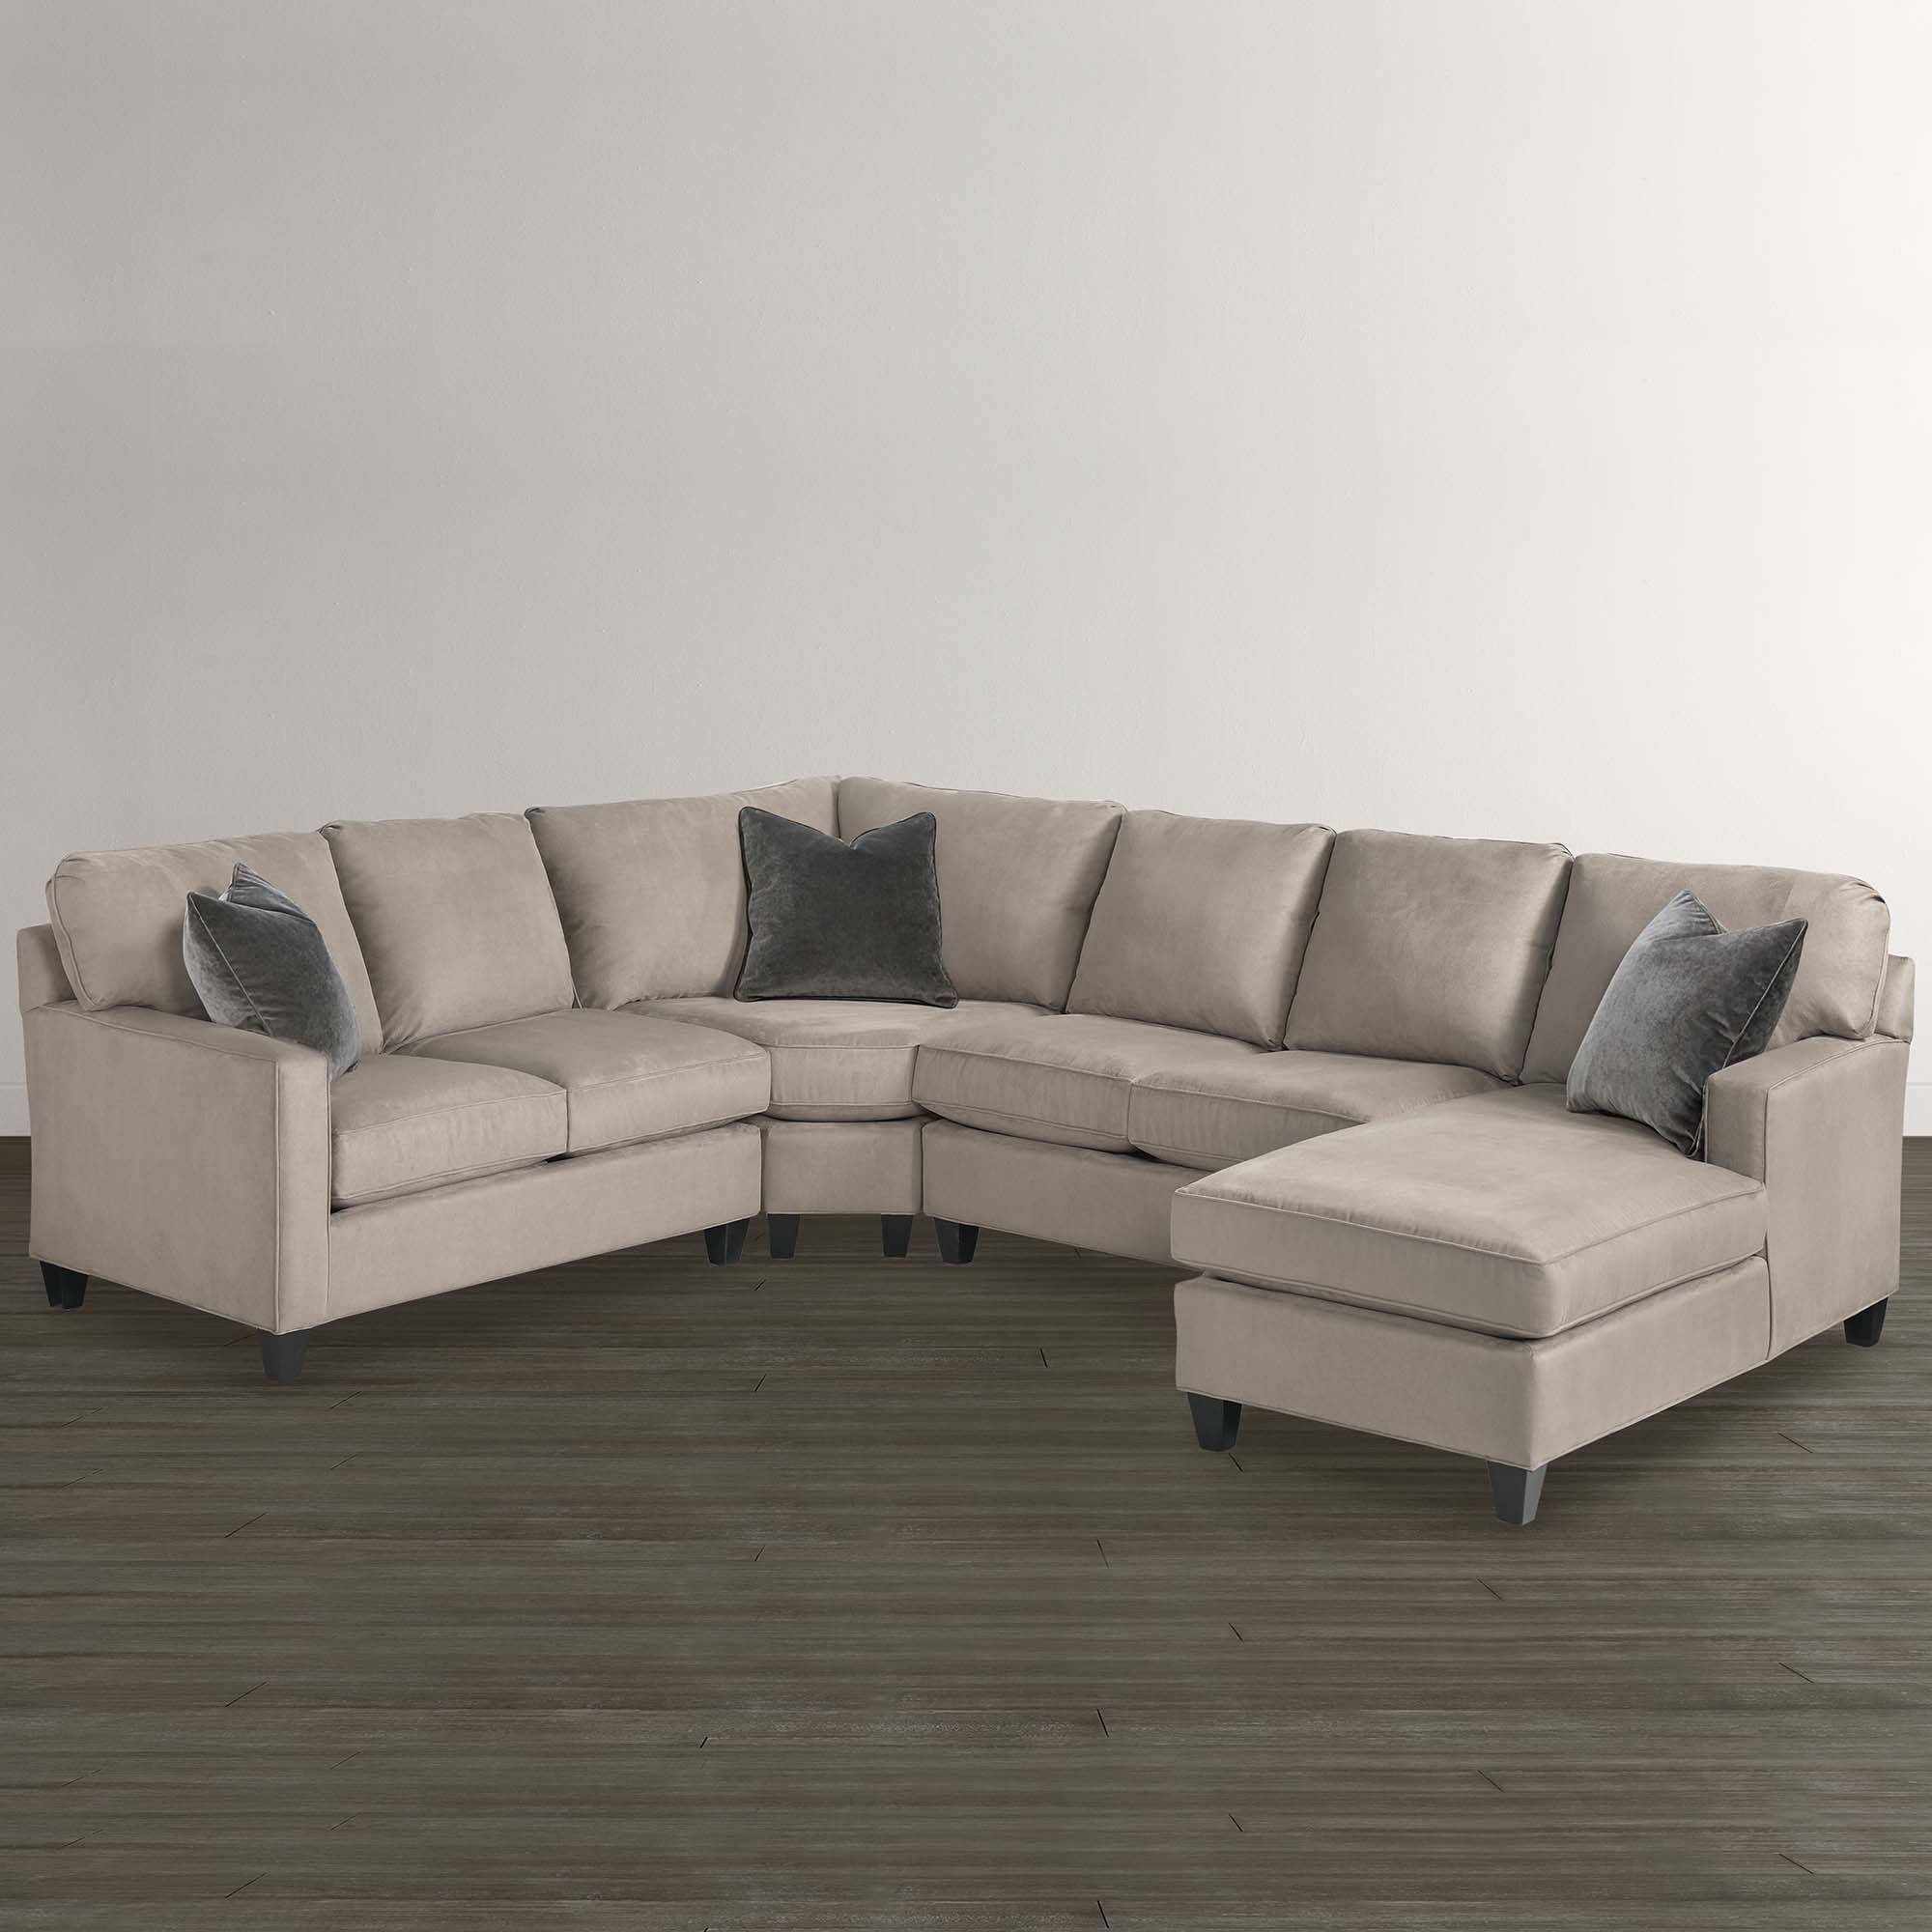 A Sectional Sofa Collection With Something For Everyone throughout Comfortable Sectional Sofa (Image 5 of 30)